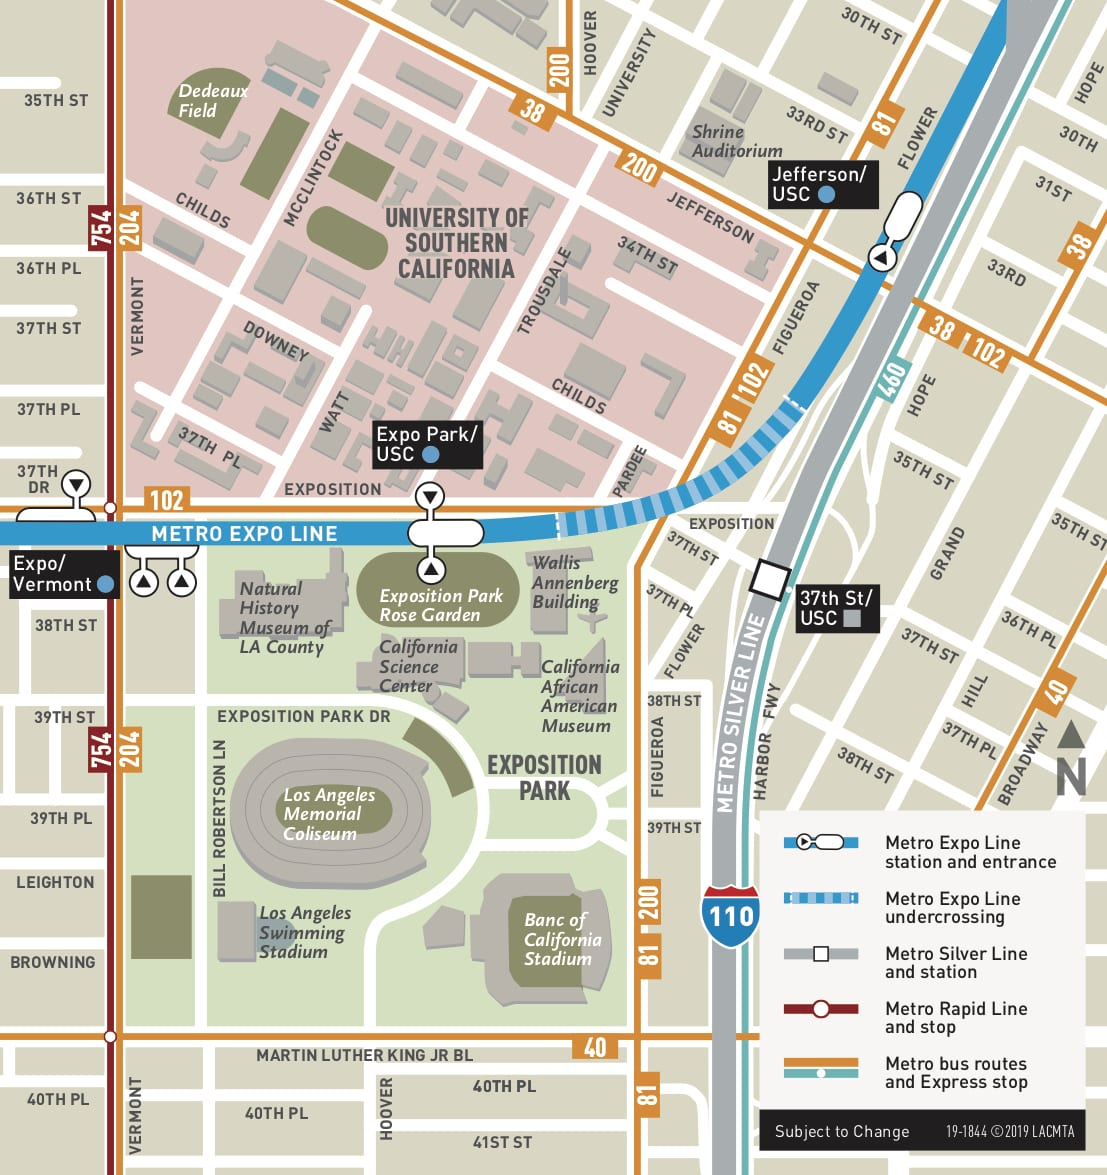 Ams Subway Map.Go Metro And Metrolink To Watch Rams Hogtie Cowboys On Saturday